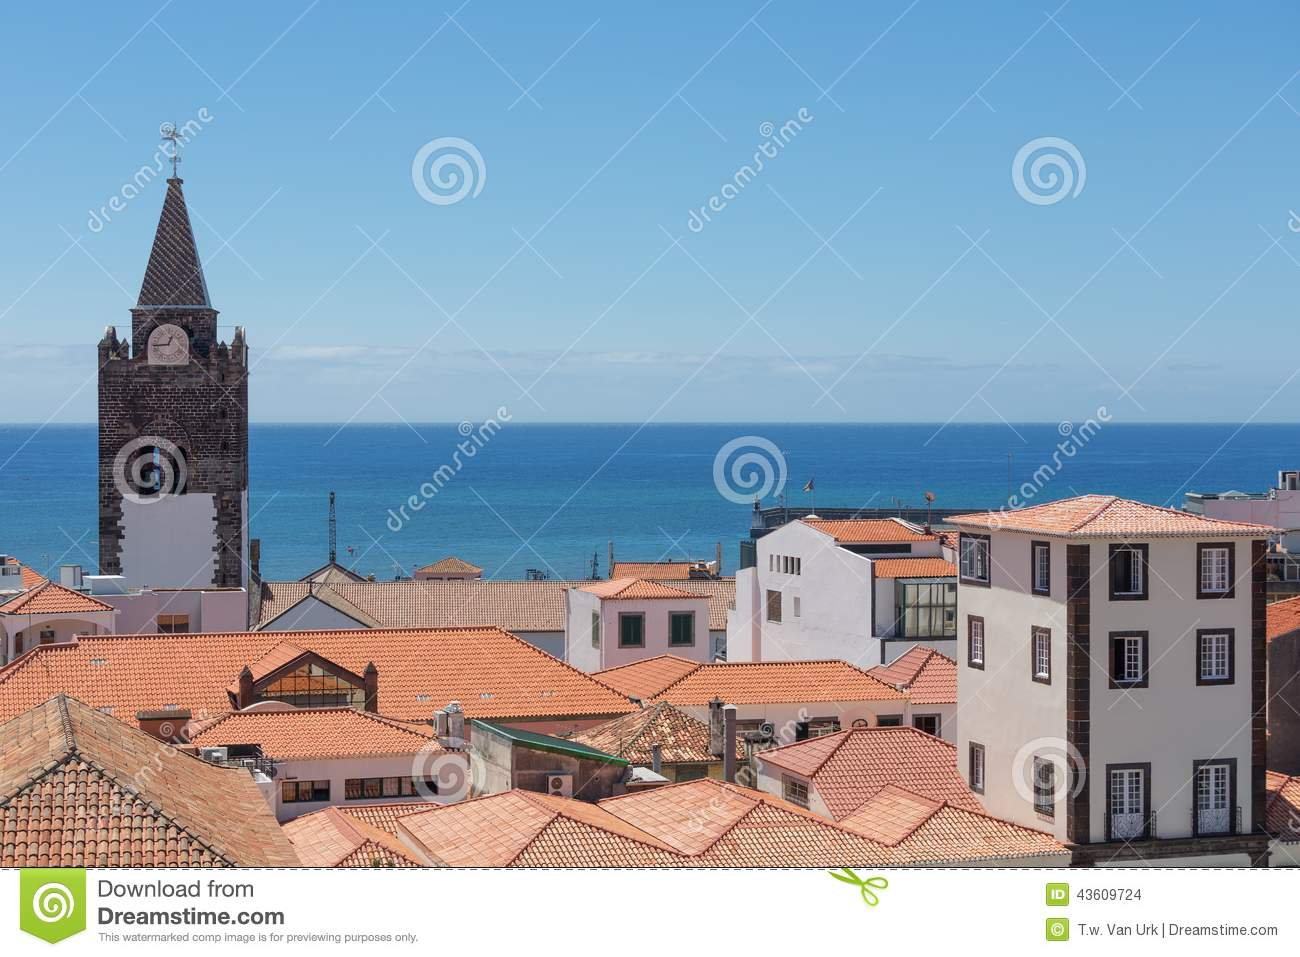 Aerial view roofs of Funchal with cathedral tower, Madeira, Portugal